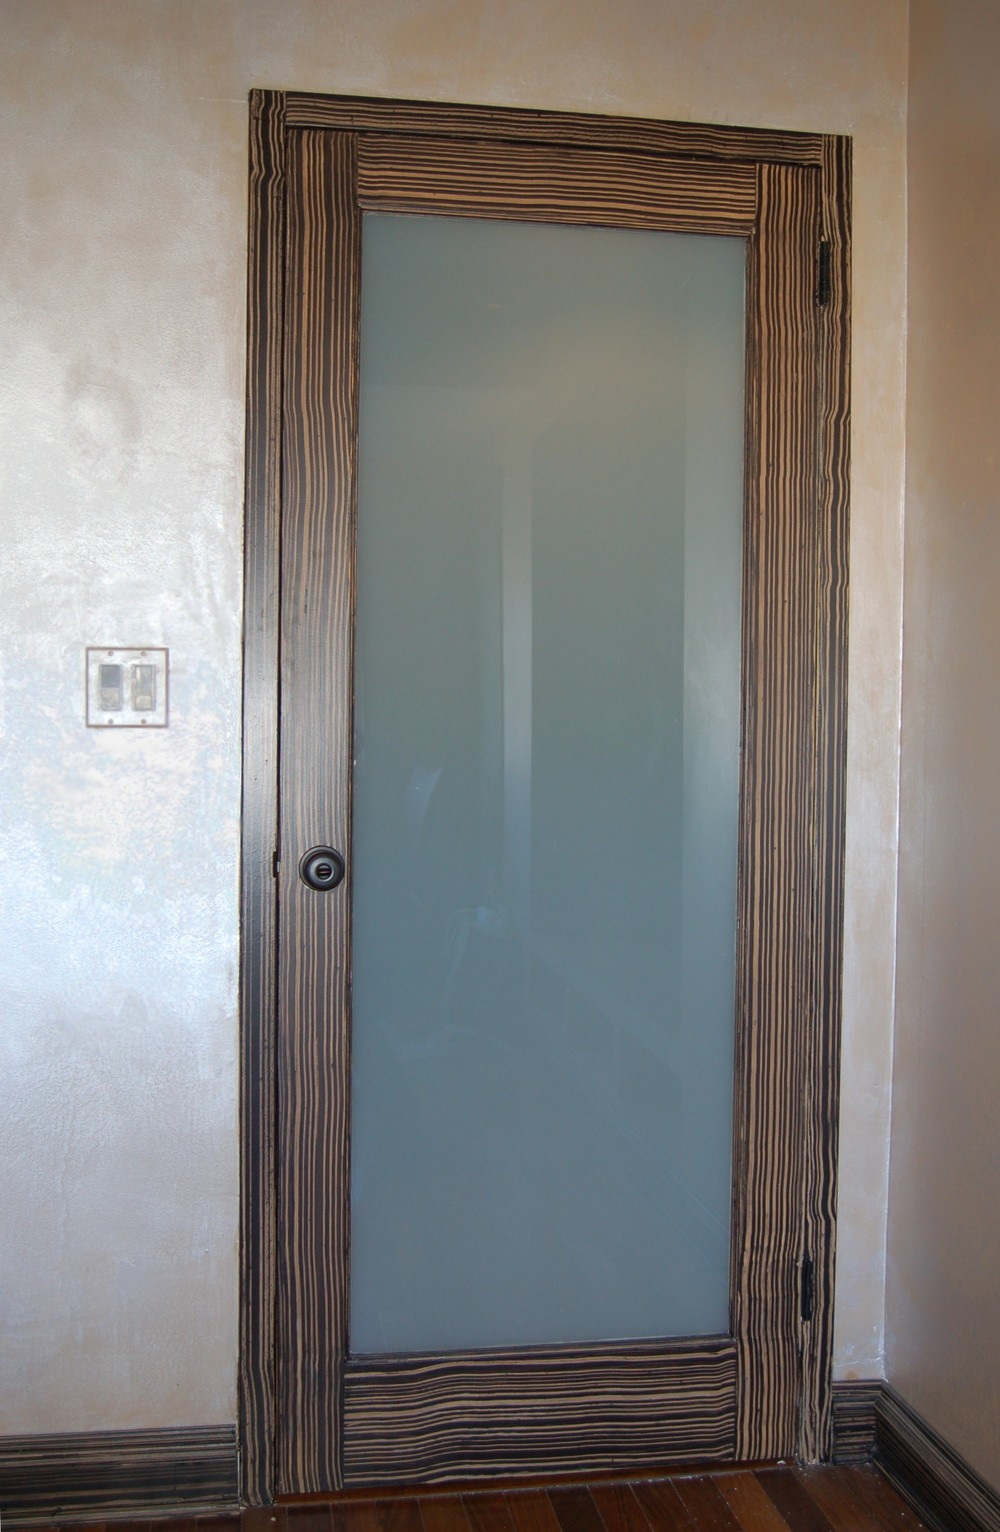 wood graining and pearlescent faux finishing on wall.jpg